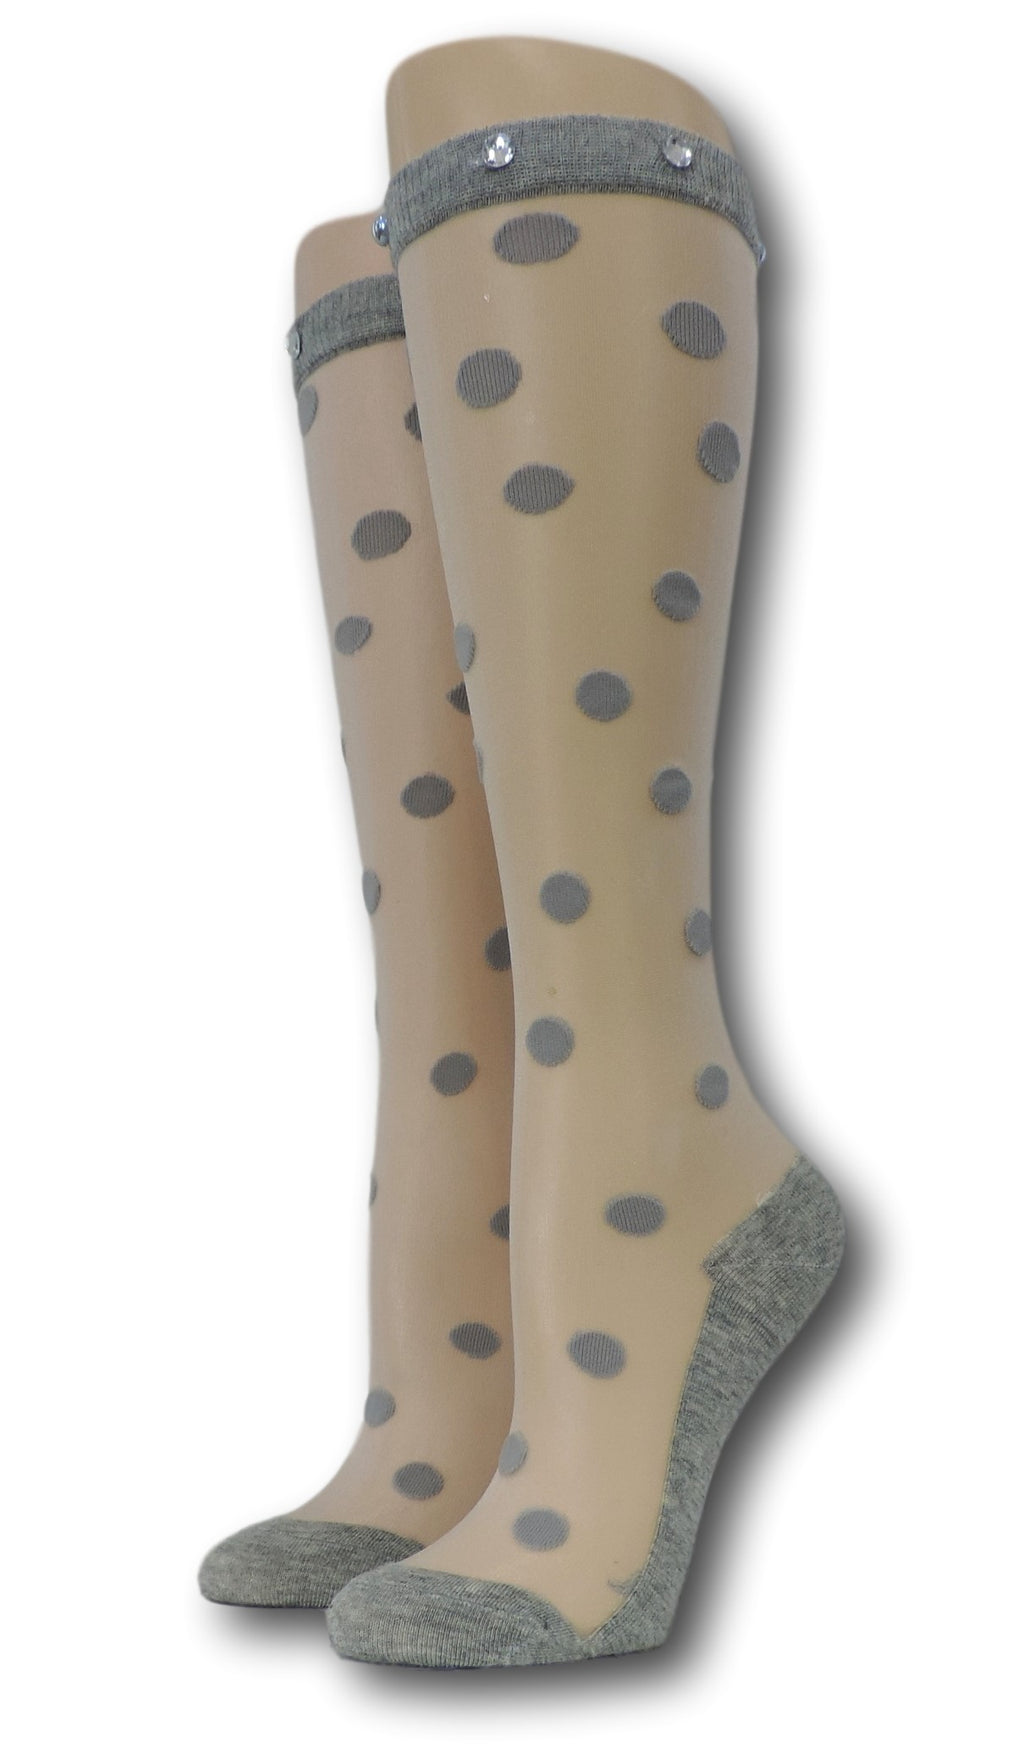 Grey Polka Knee High Sheer Socks with beads